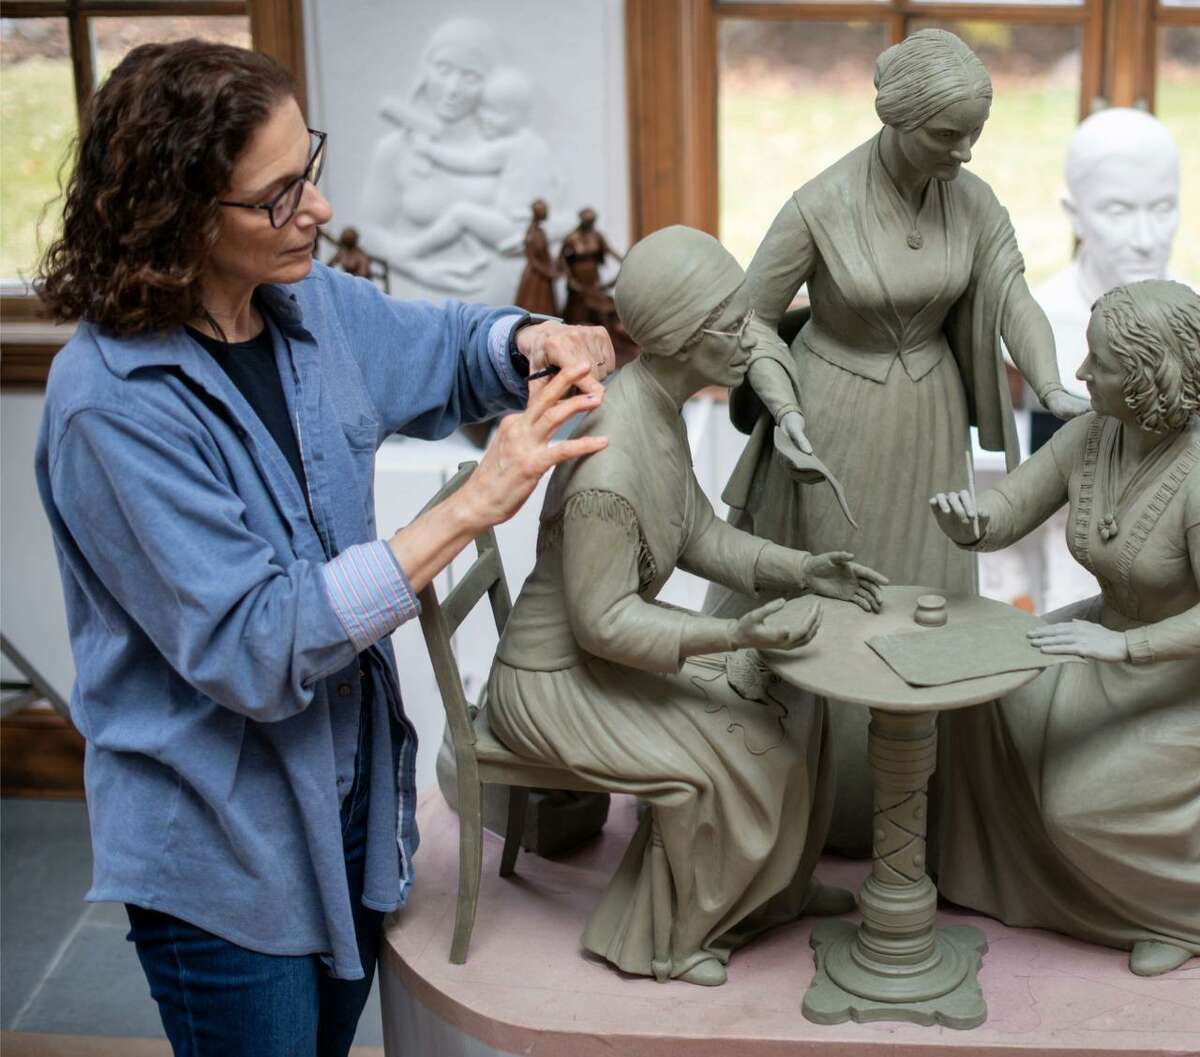 Ridgefield artist Meredith Bergmann works on a model of a sculpture that was unveiled in Central Park in New York City last week. The 14-foot-tall bronze monument depicts Susan B. Anthony, Sojourner Truth and Elizabeth Cady Stanton, three of the more prominent leaders in the nationwide fight for women's right to vote.